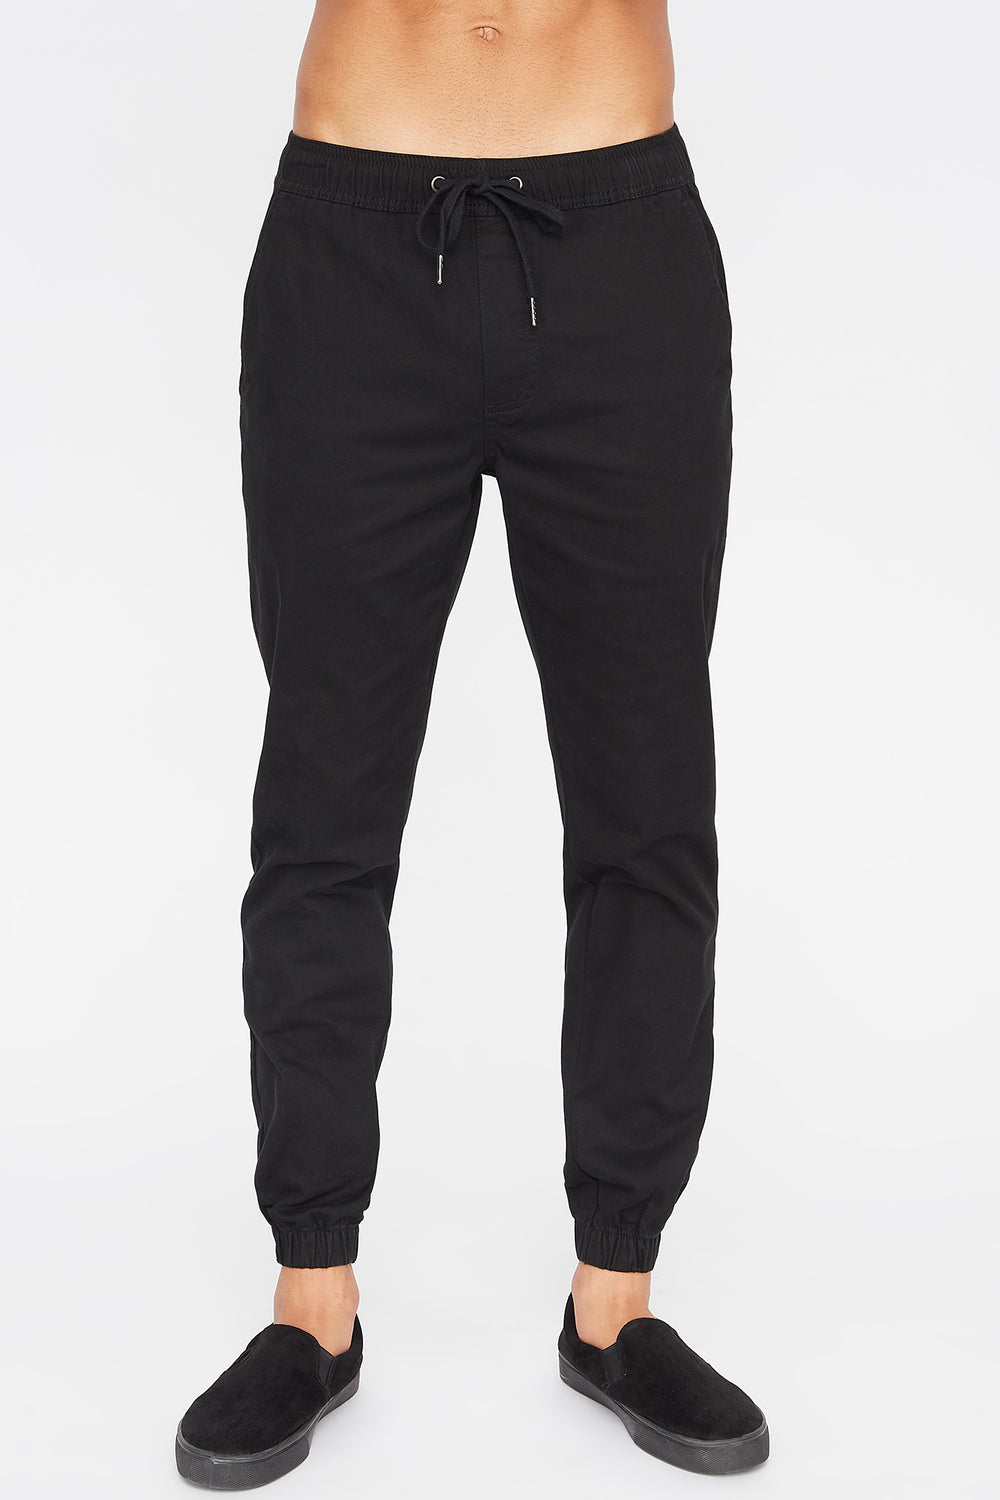 West49 Mens Jogger Black